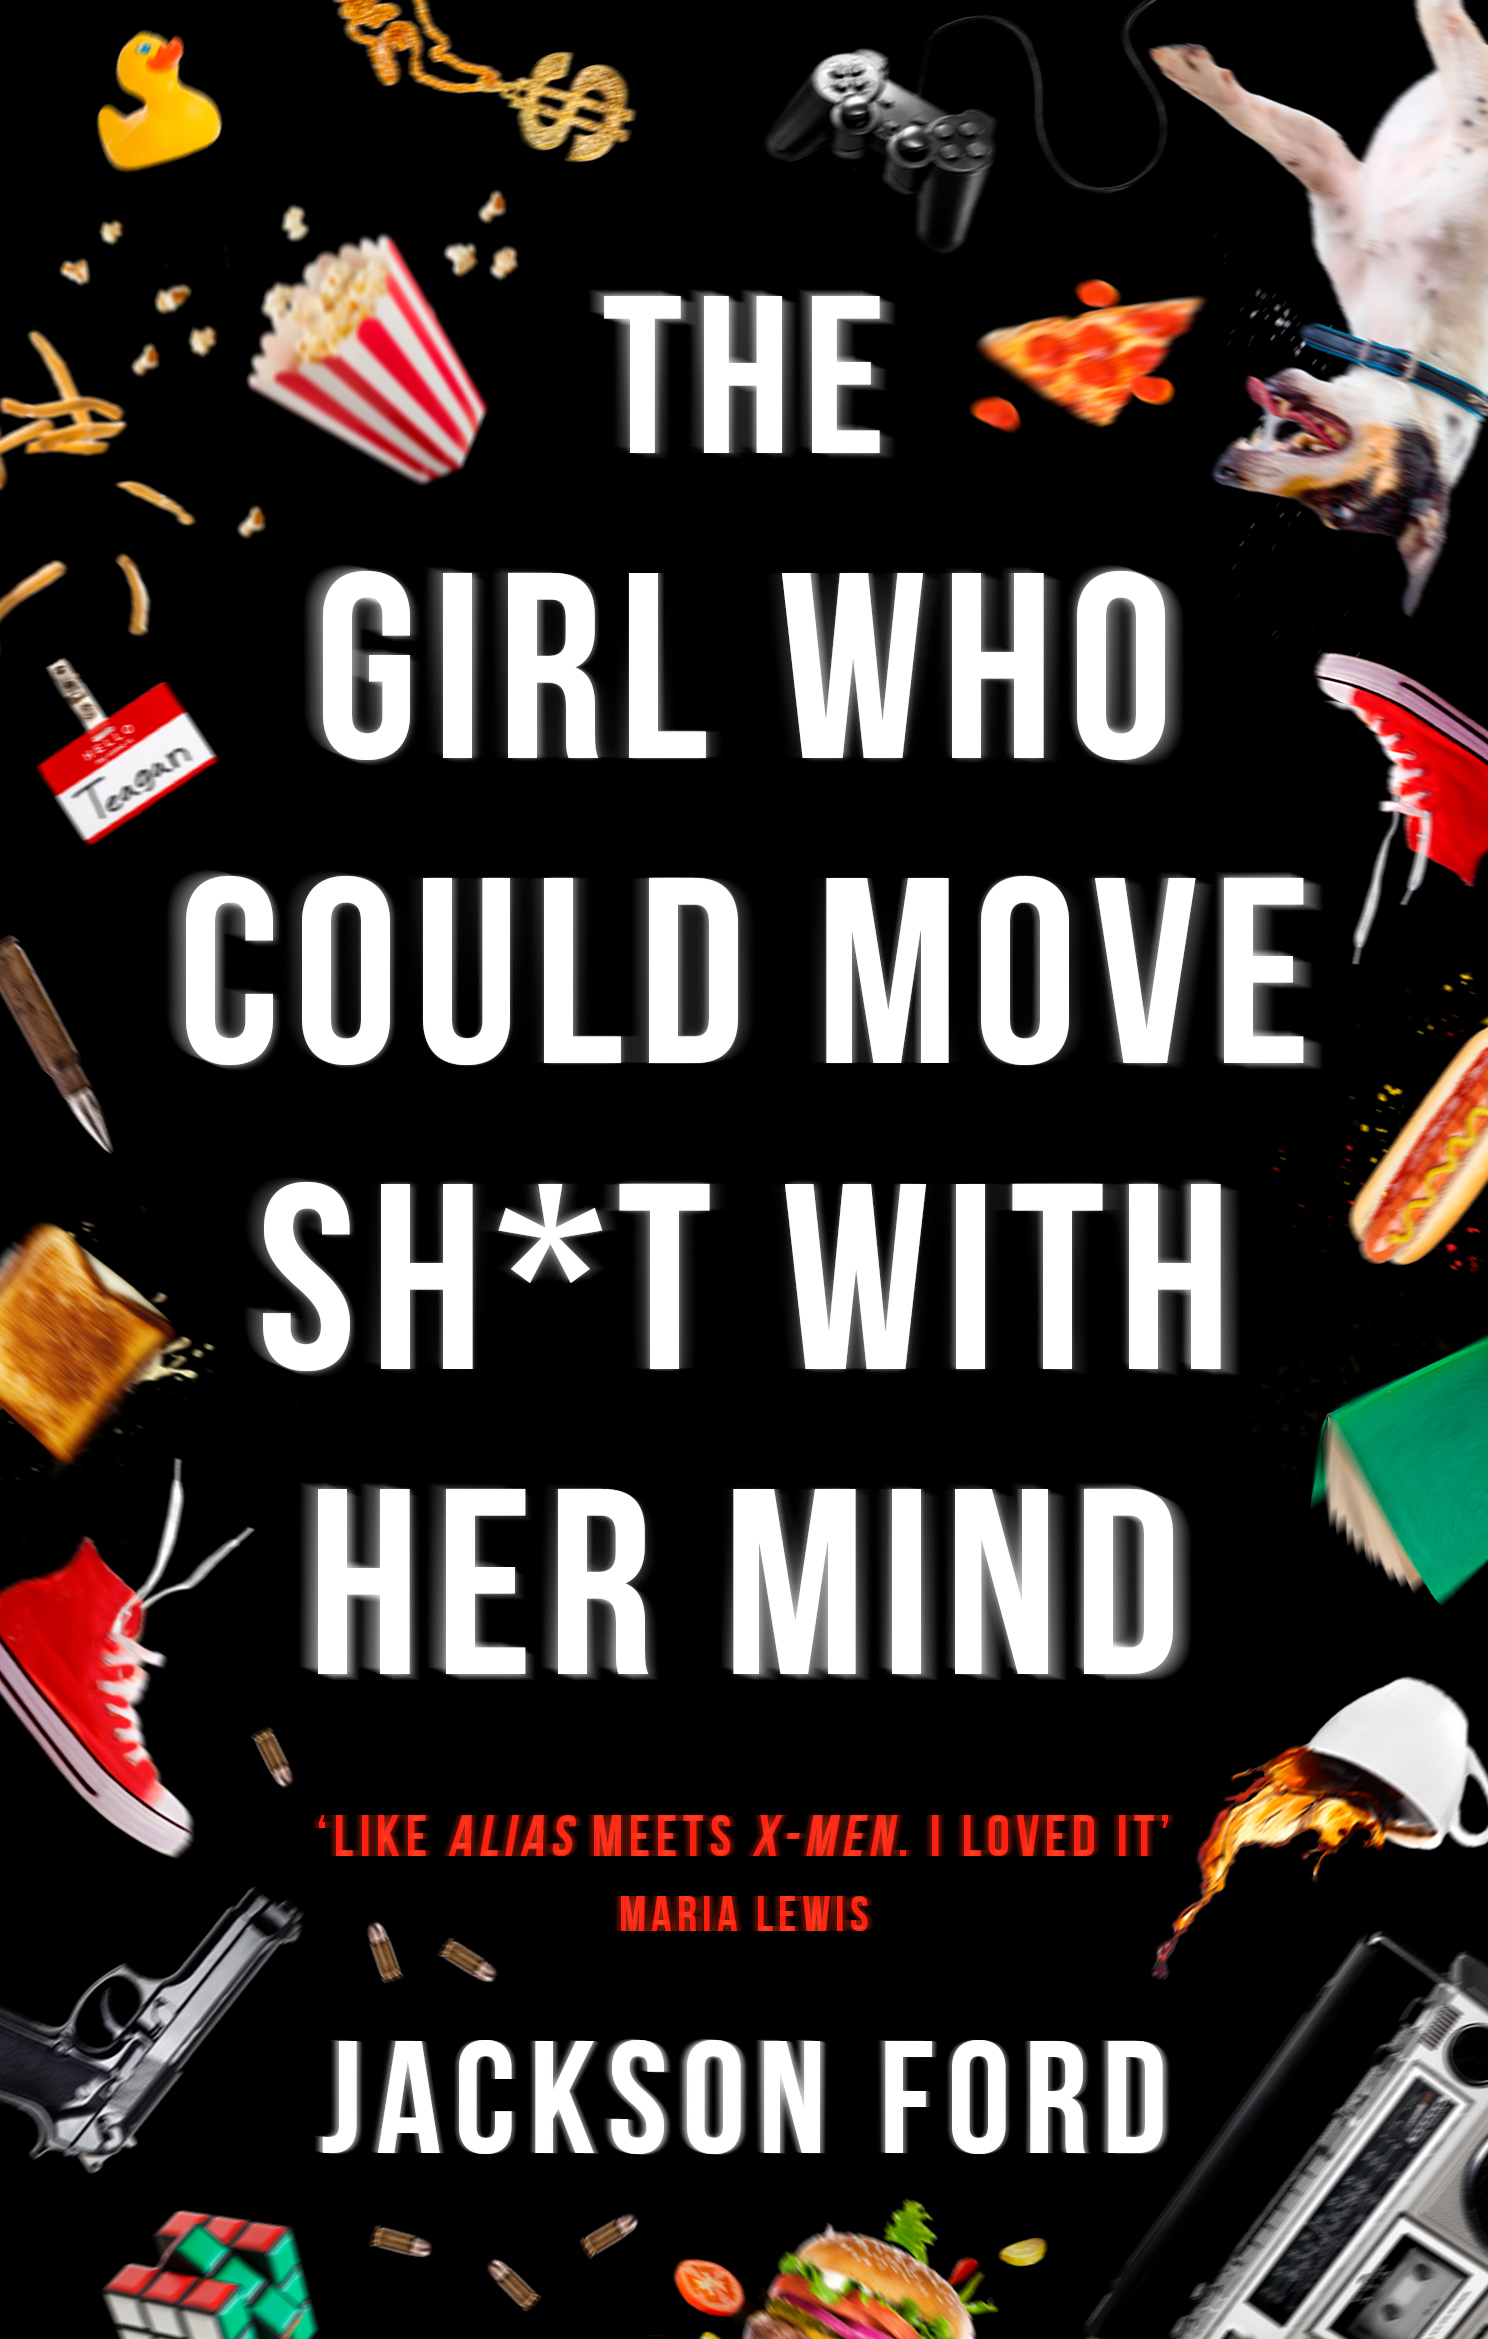 Cover Launch: THE GIRL WHO COULD MOVE SH*T WITH HER MIND ...